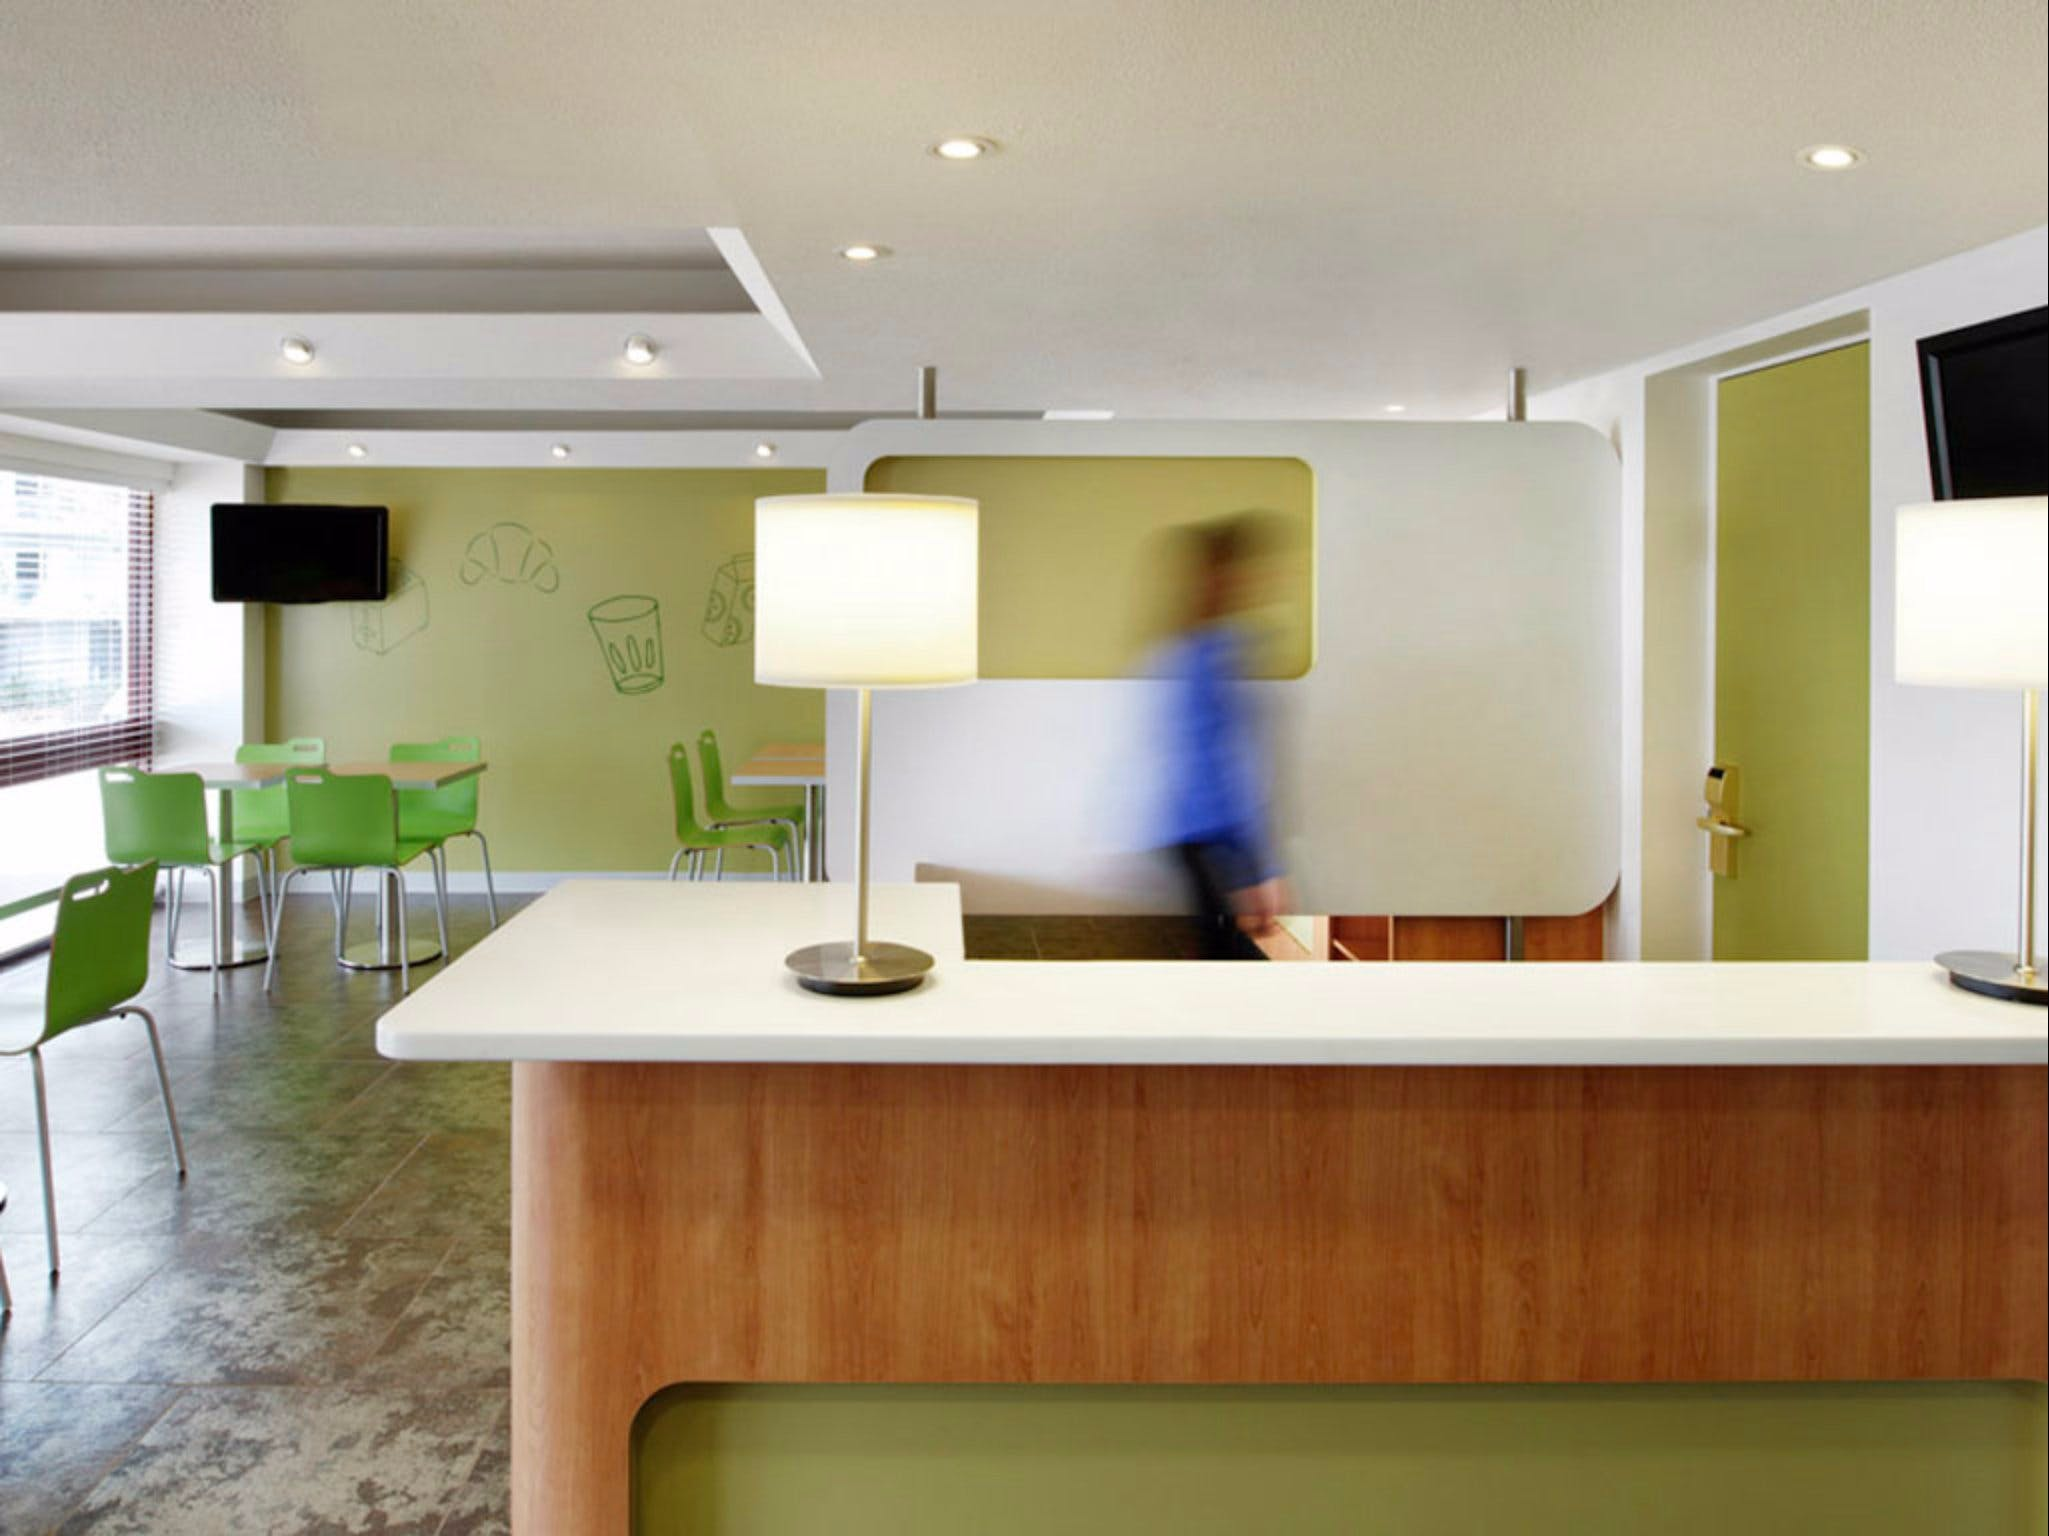 ibis budget Newcastle - Accommodation Port Macquarie